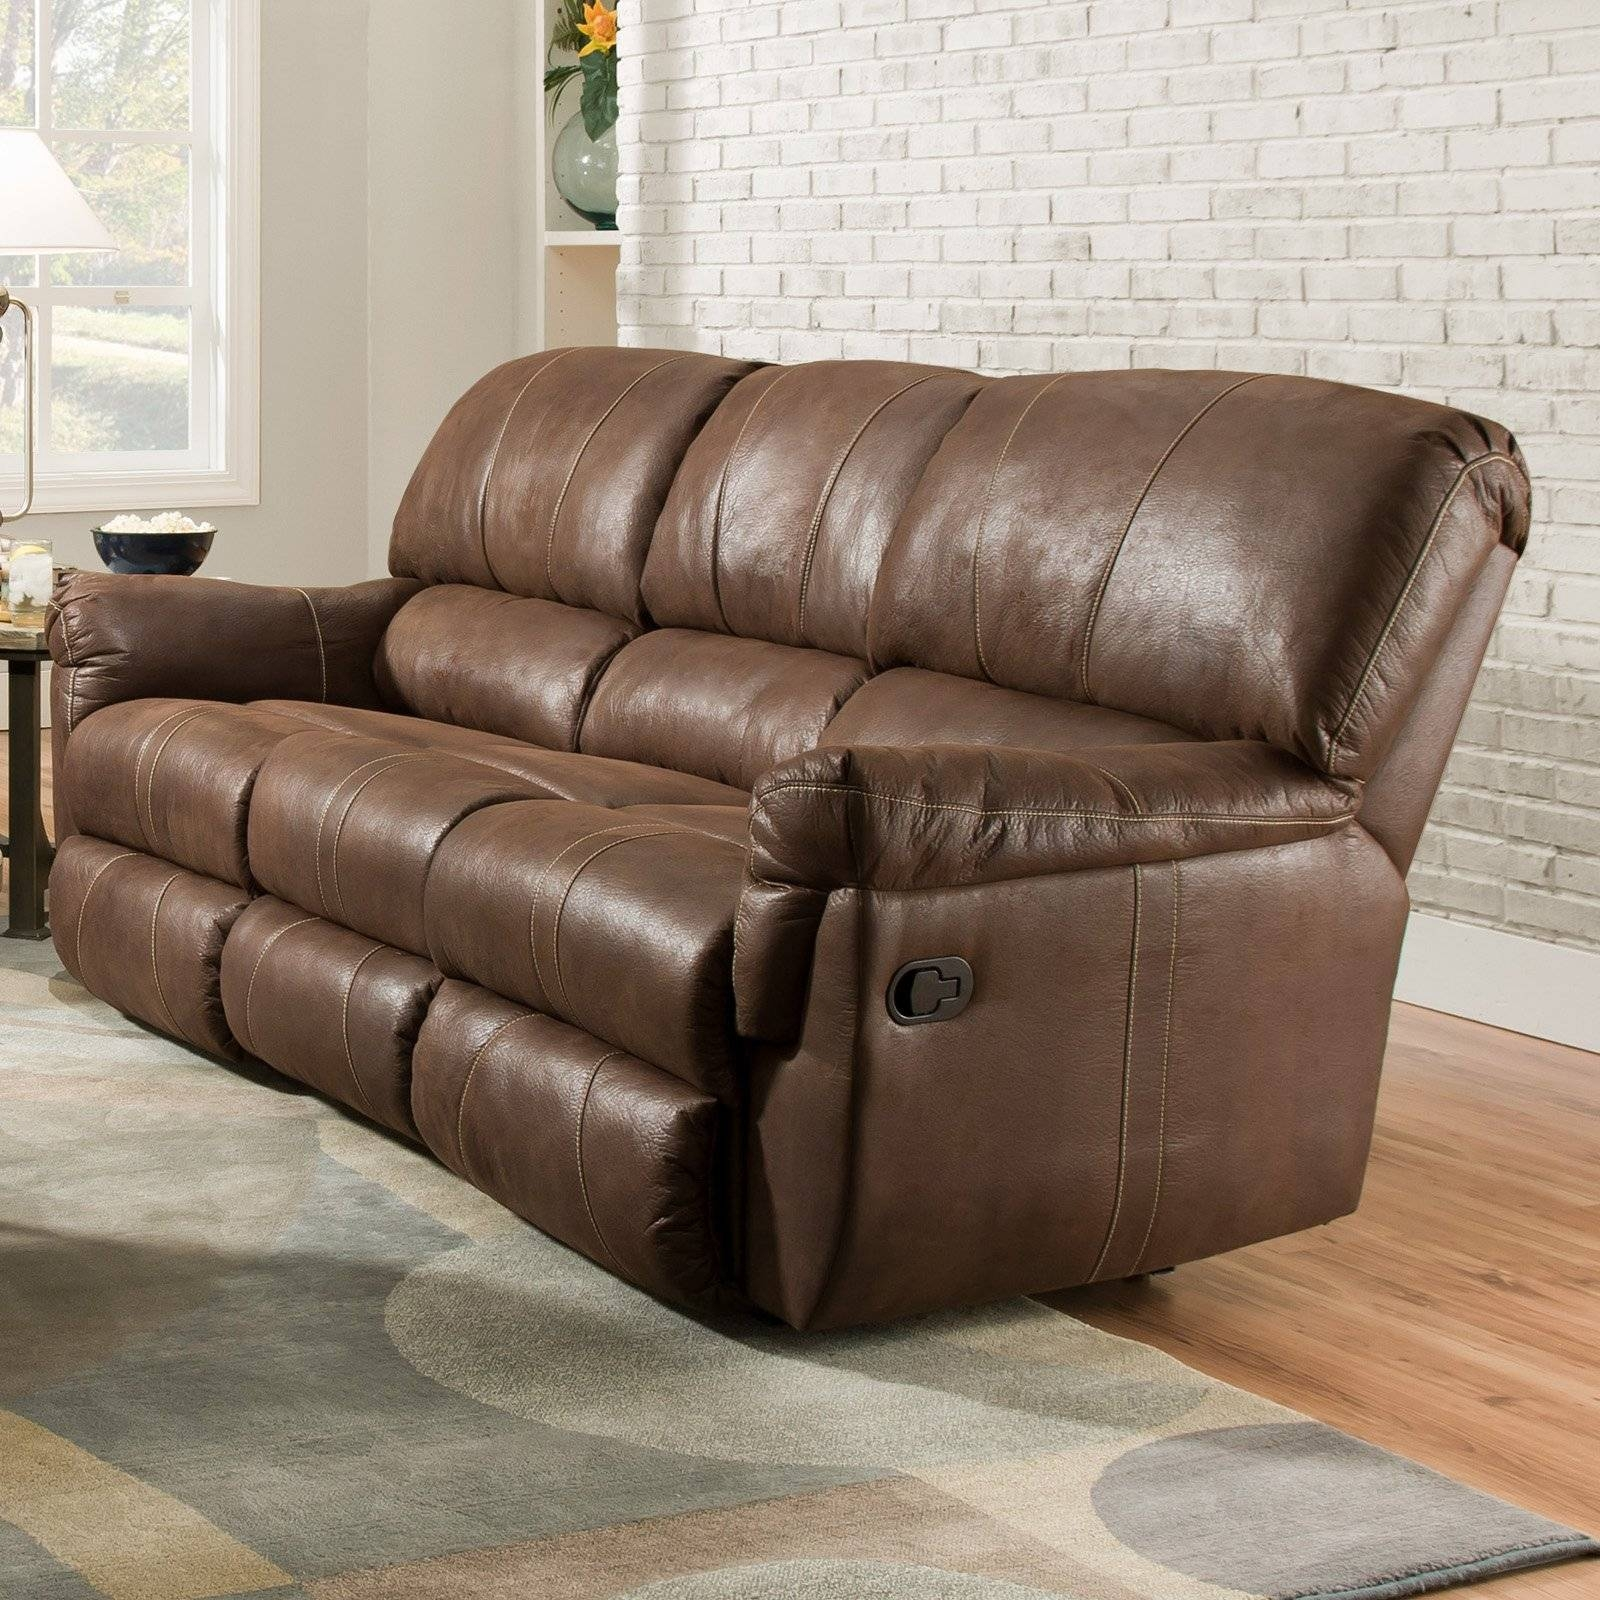 Simmons Upholstery Renegade Beautyrest Sofa - Mocha - Walmart inside Simmons Leather Sofas (Image 14 of 15)